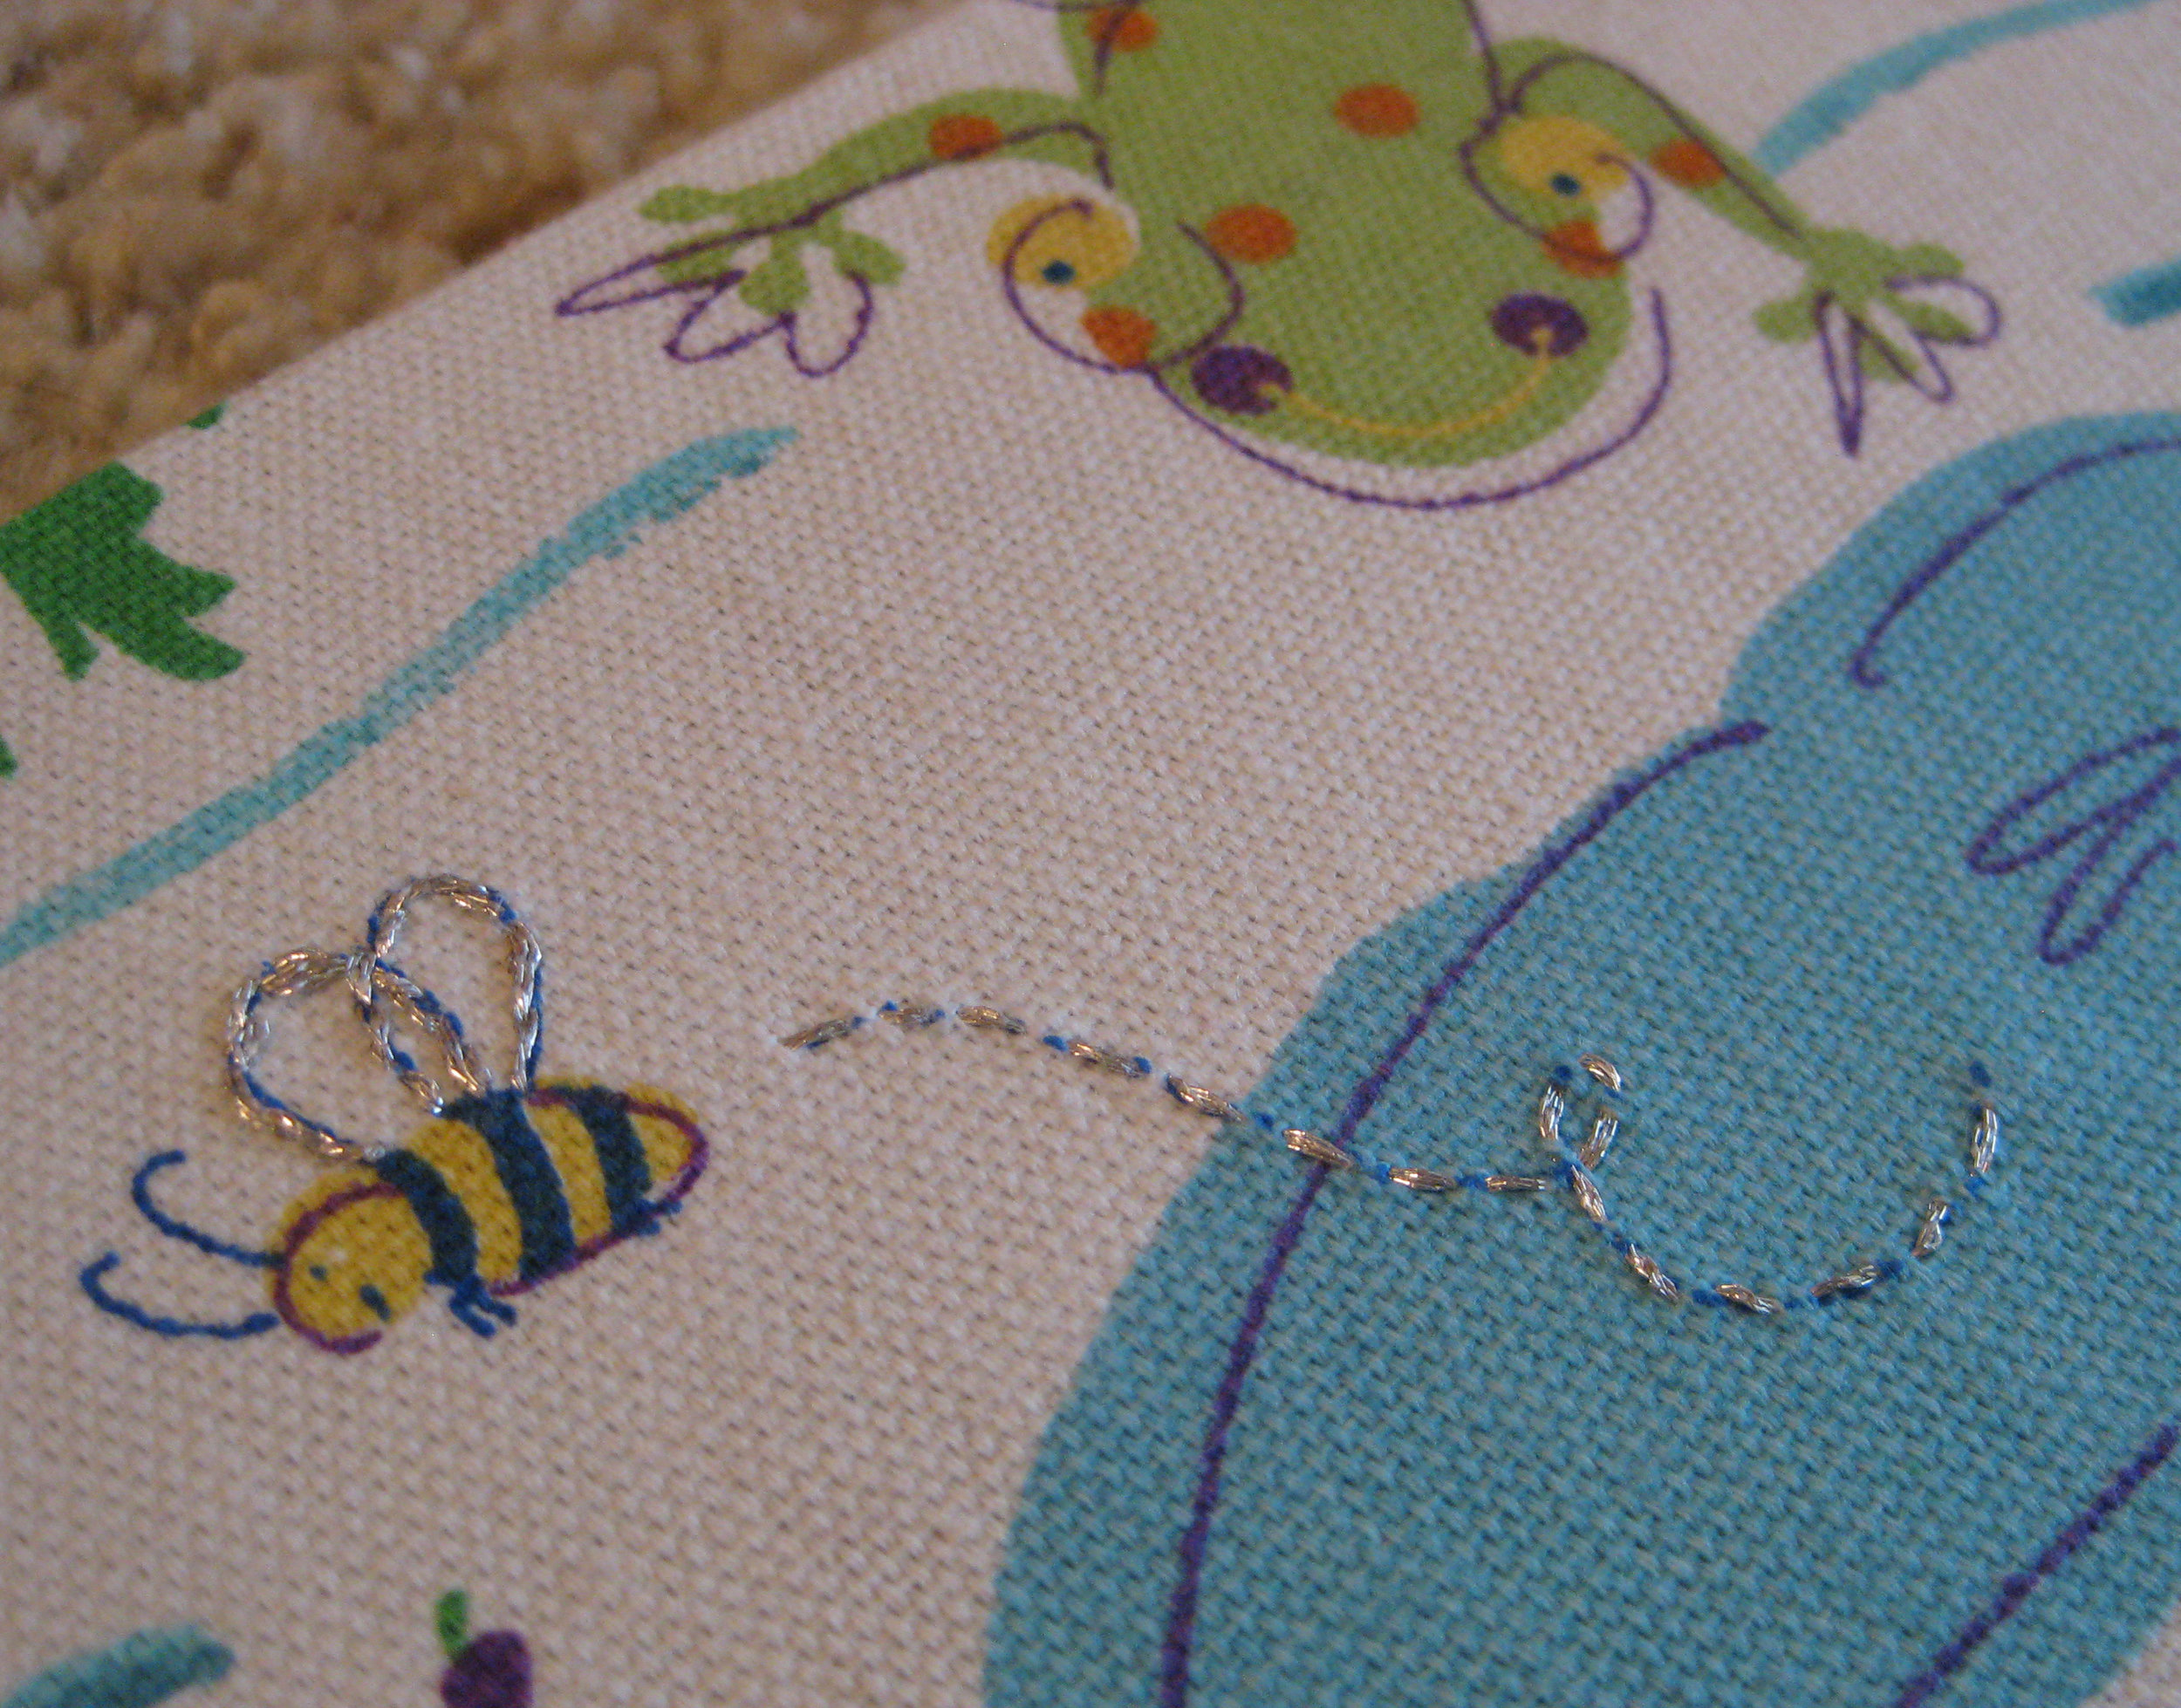 beedetail